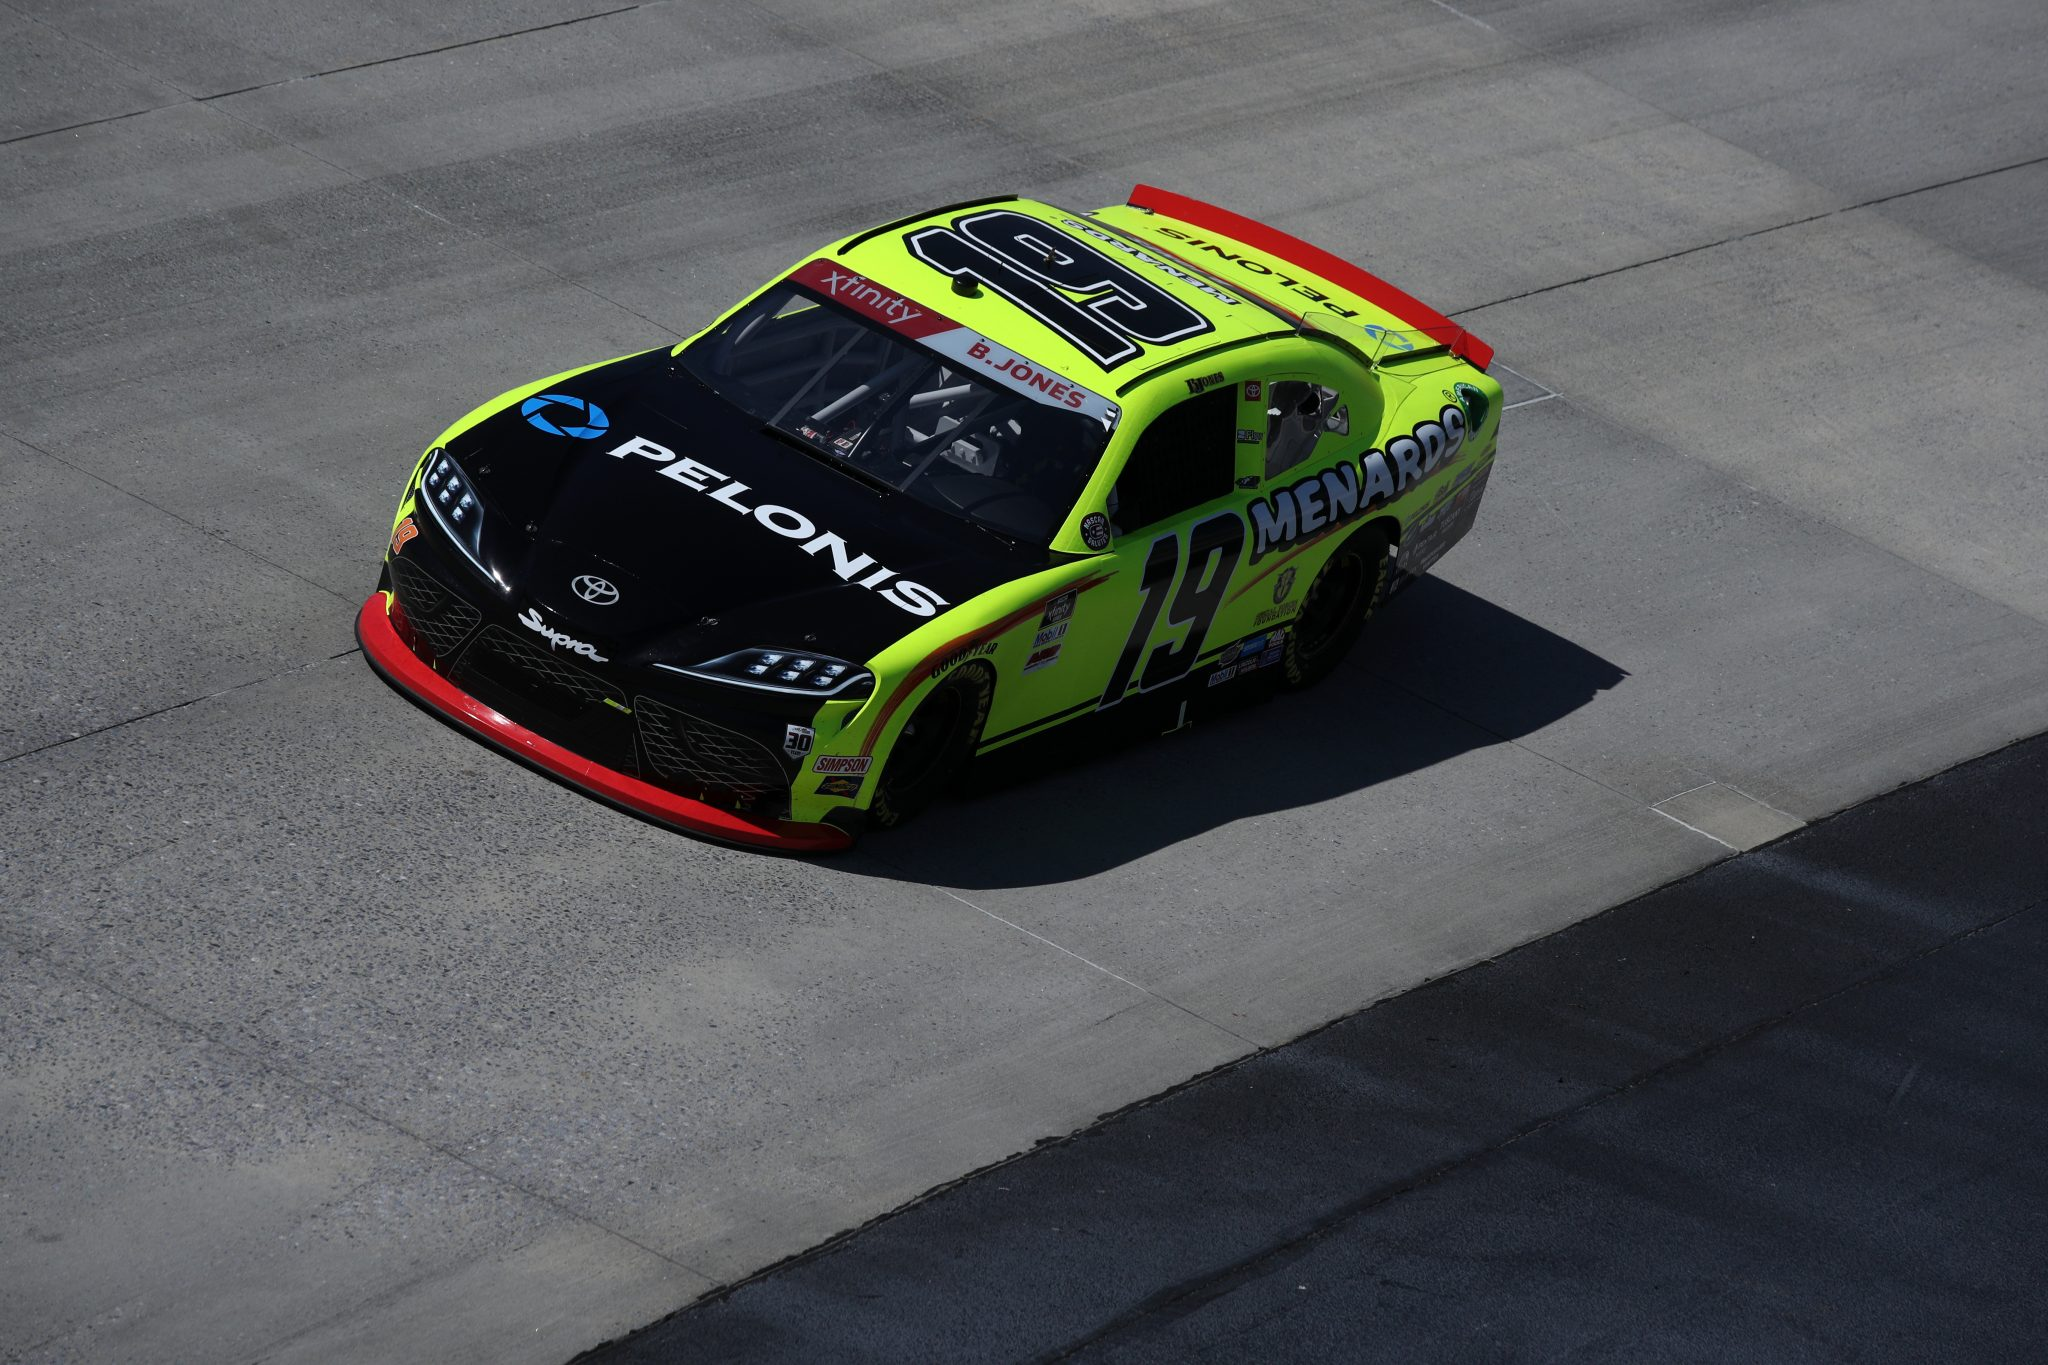 DOVER, DELAWARE - MAY 15: Brandon Jones, driver of the #19 Menards/Pelonis Toyota, races during the NASCAR Xfinity Series Drydene 200 race at Dover International Speedway on May 15, 2021 in Dover, Delaware. (Photo by Sean Gardner/Getty Images) | Getty Images